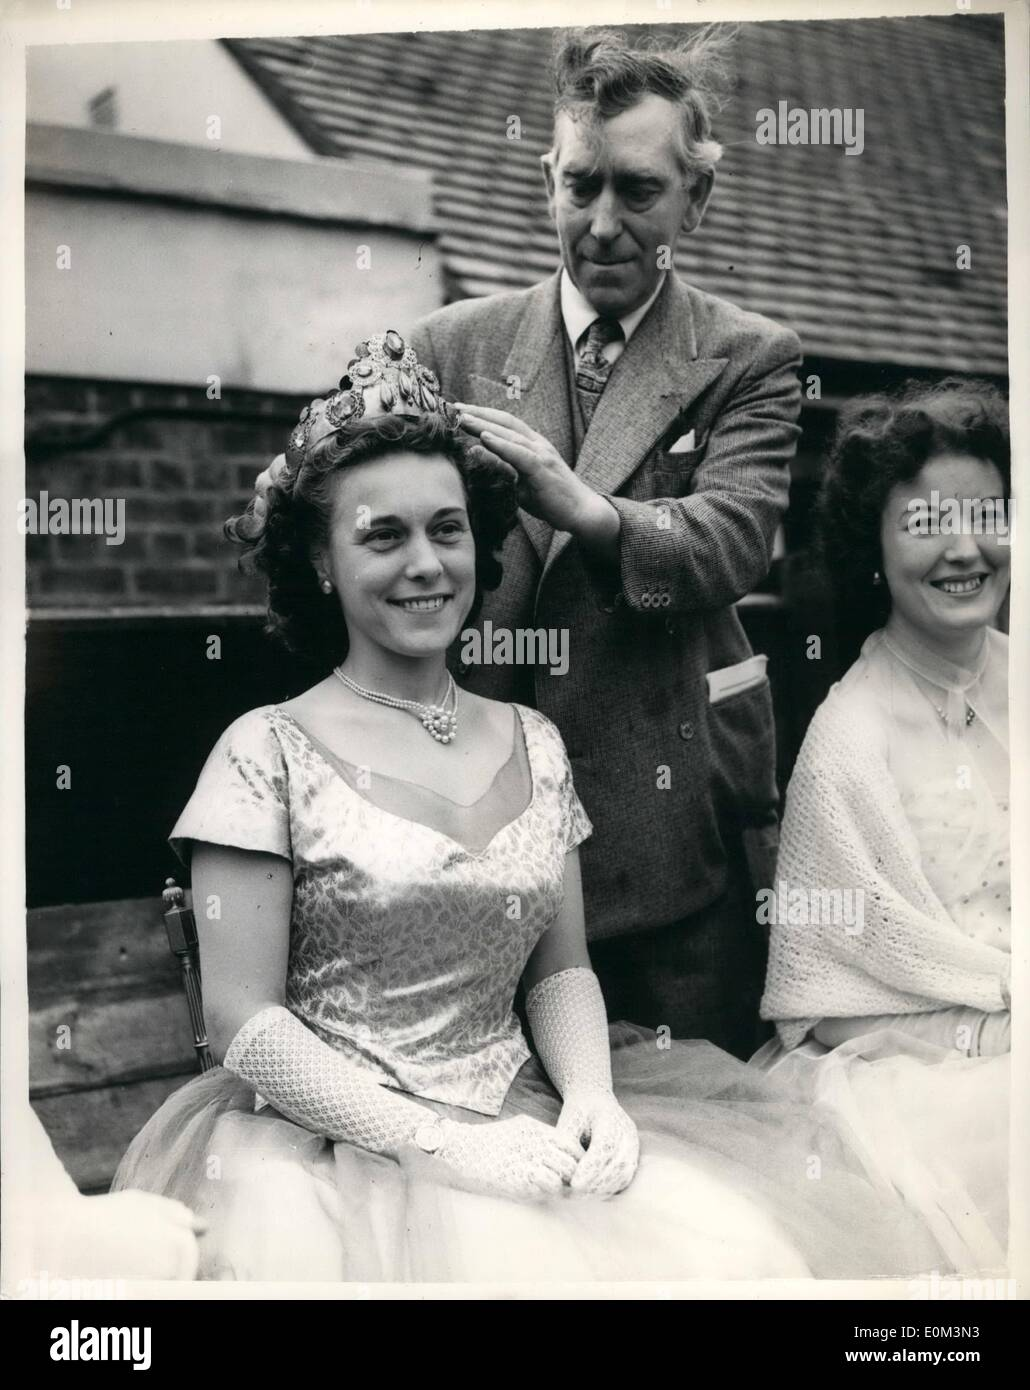 May 05, 1953 - Revival of 13th. Century Fair at Cheam.. Crowning The Queen. Even the stocks were to be seen at the 13th. Century Fair which was opened by Sir Sidney Marshall M.P. for Button and Cheam - at Crowning of 27 year old Mrs. Eunice Pither as Queen of the Fair. Keystone Photo Shows:- Mr. J.C. Robertson crowns Mrs. Pither as queen of the fair - at Cheam this morning. - Stock Image